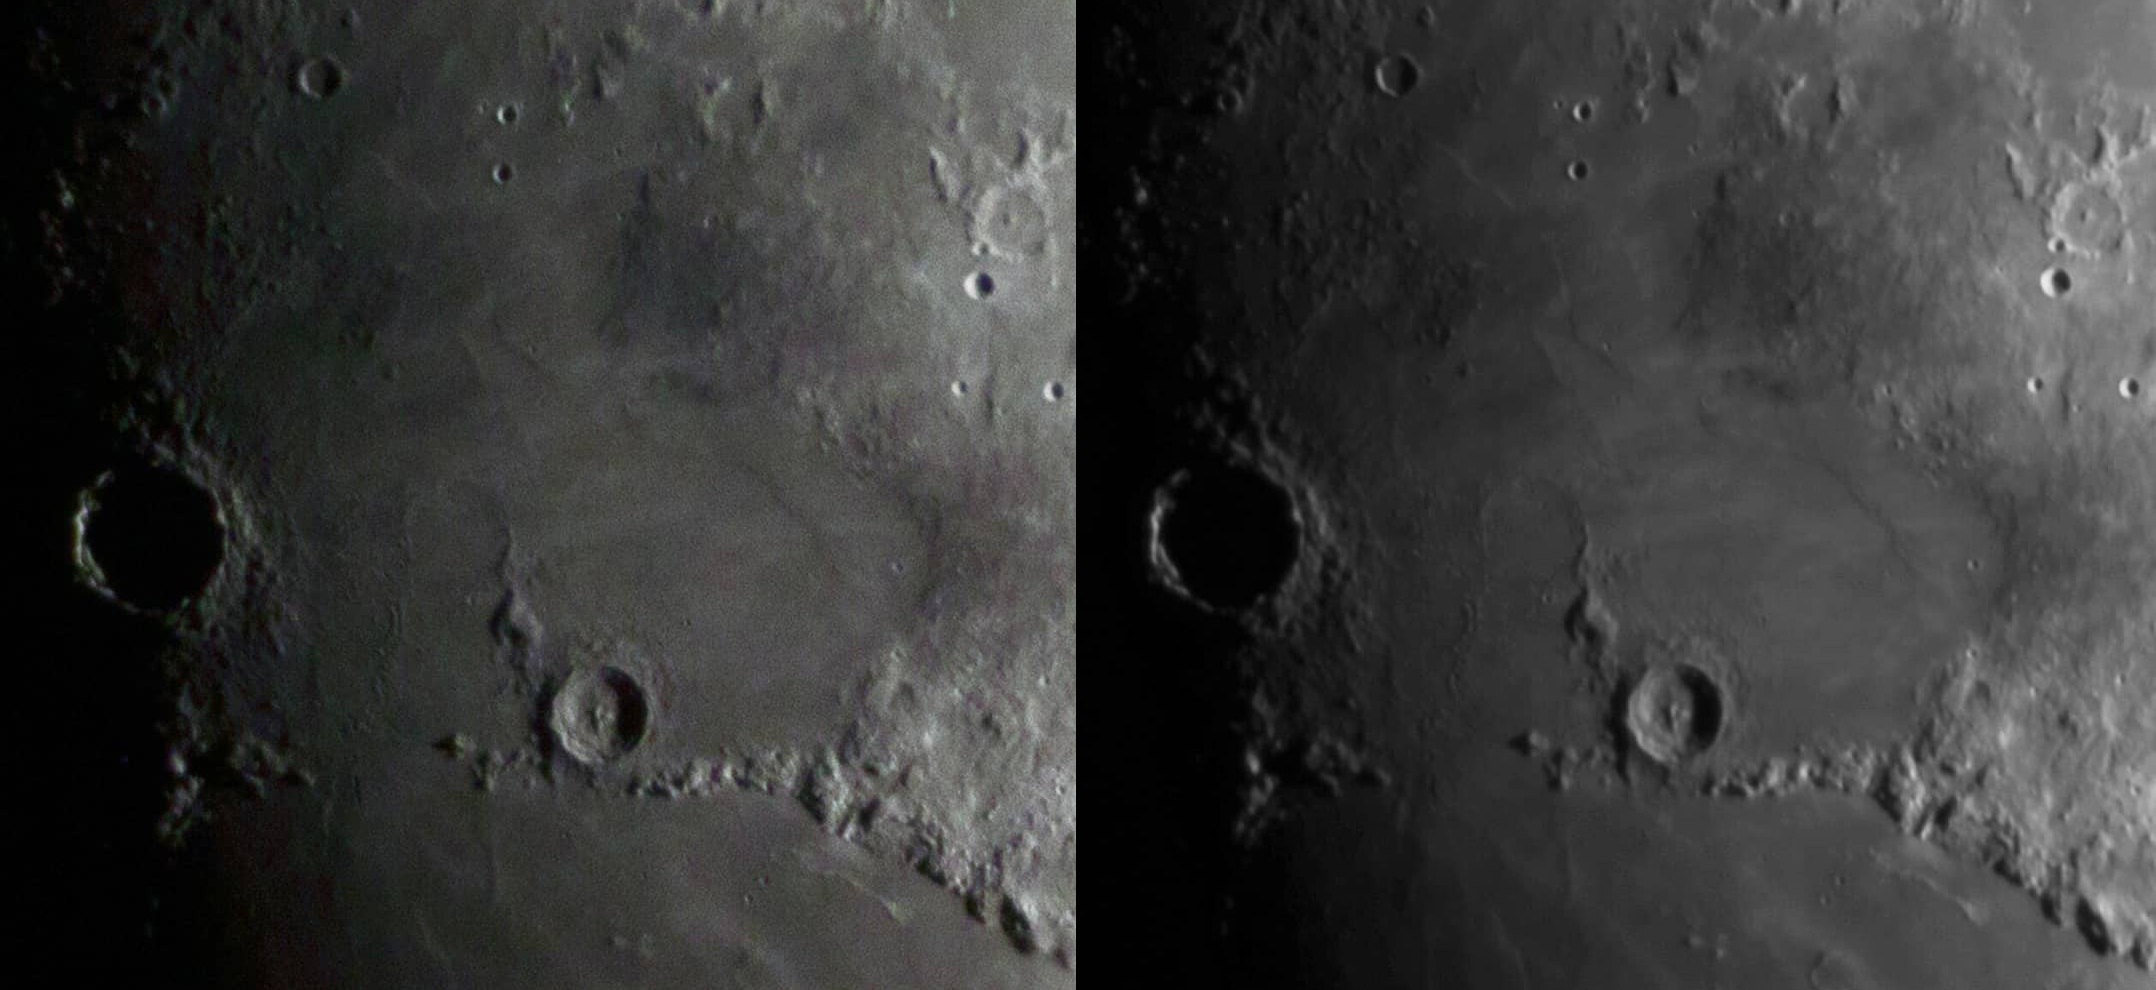 Single image (left) compared to 500 images stacked (right)